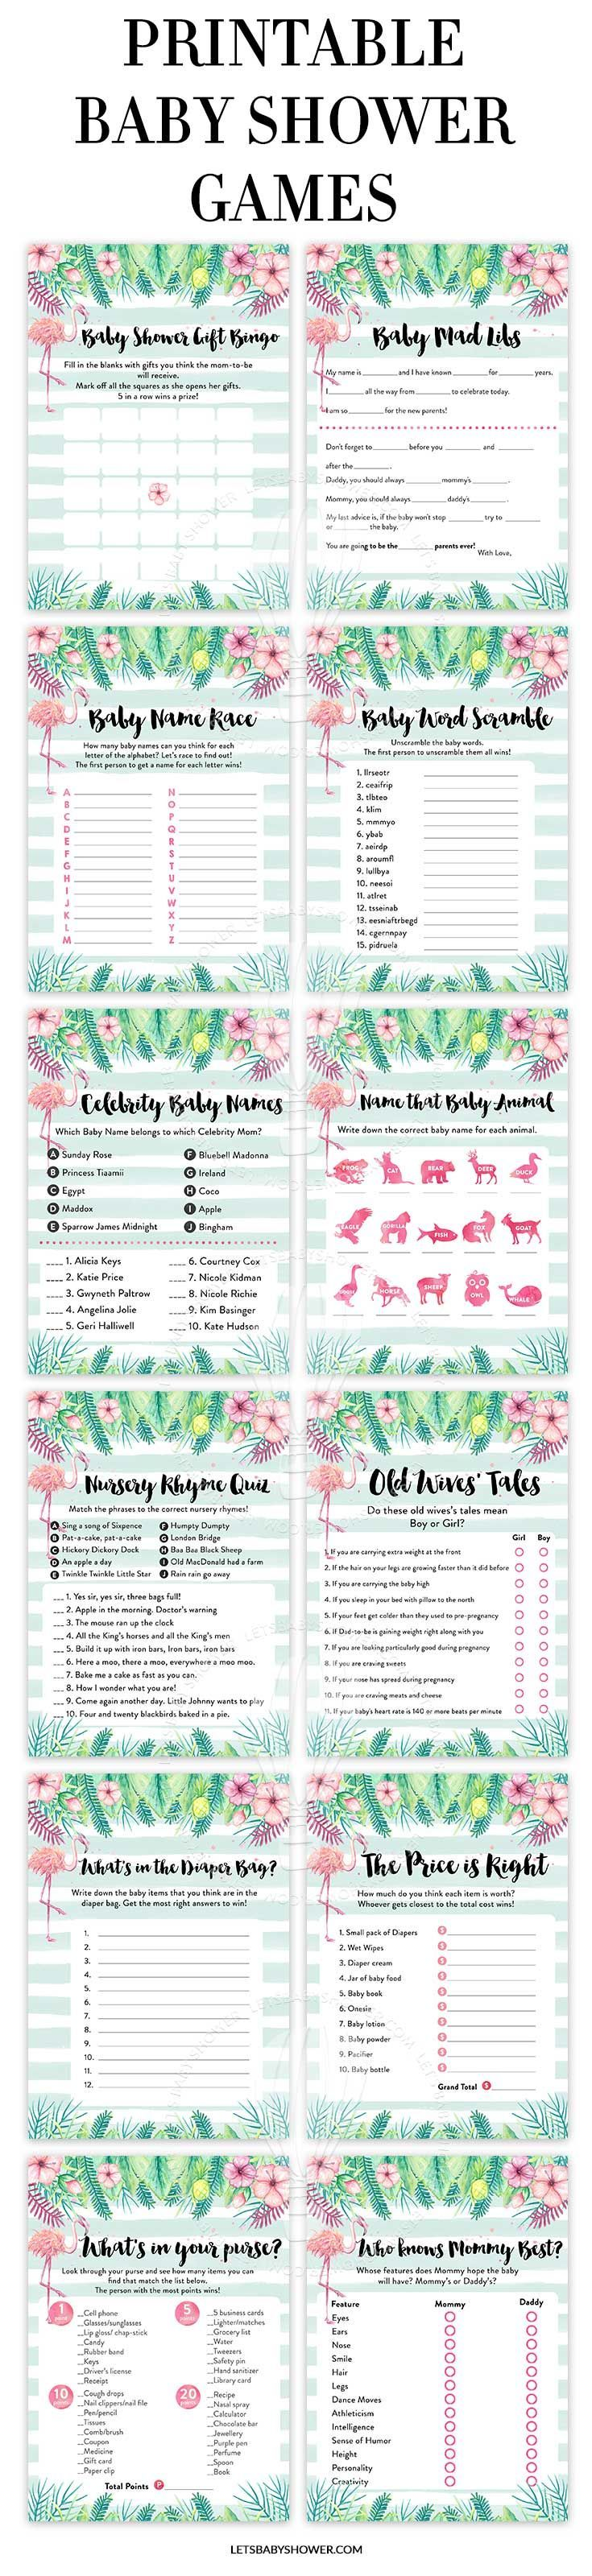 Looking for a Baby Shower theme for Girls? Here's one of the baby shower ideas your guests will surely enjoy. Tropical Flamingo Baby Shower Games for Girls #BabyGames